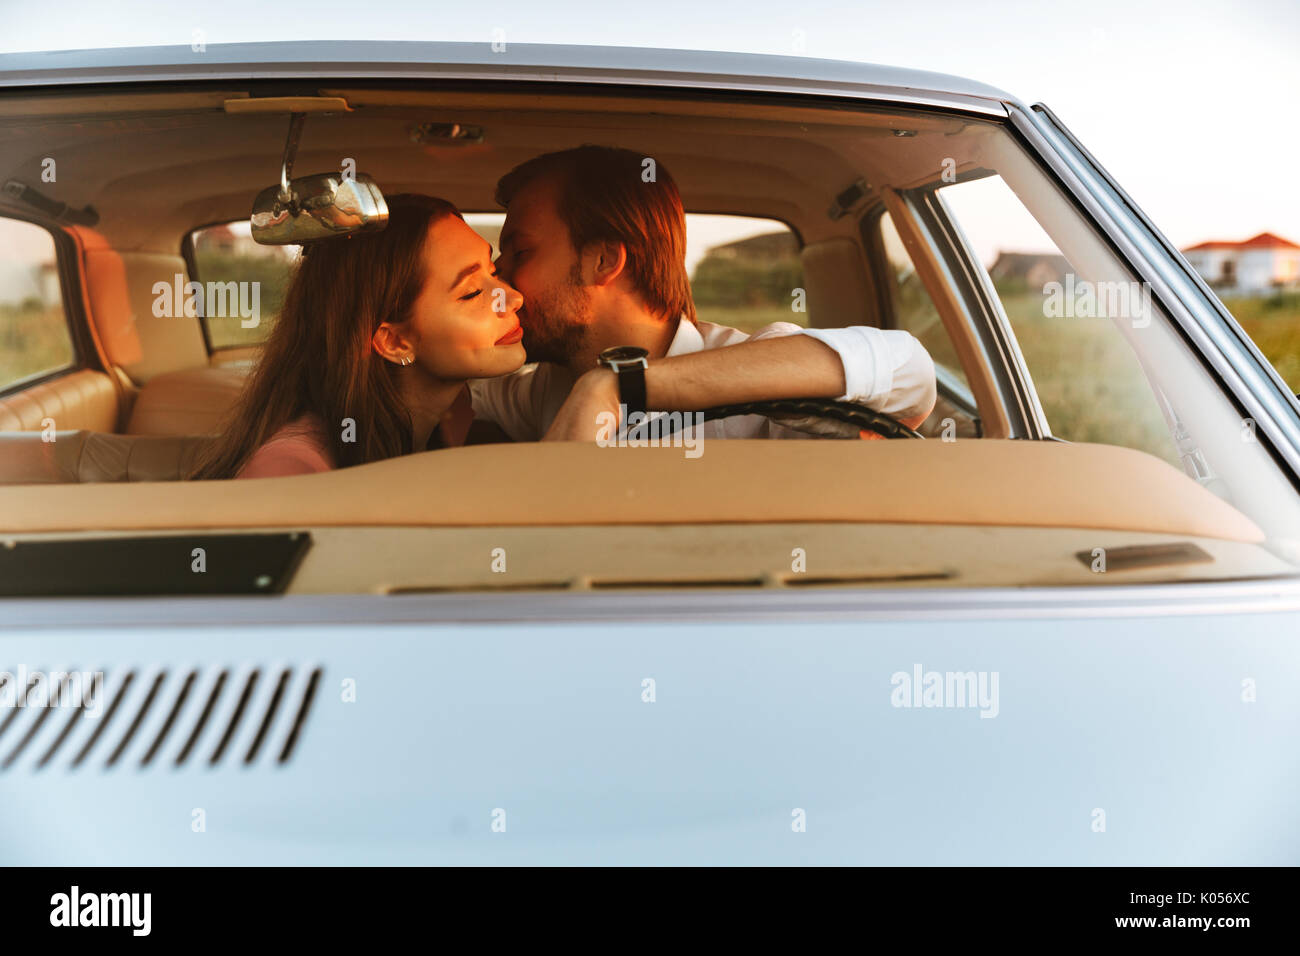 Young happy couple kissing while sitting together inside a car. Front window view - Stock Image